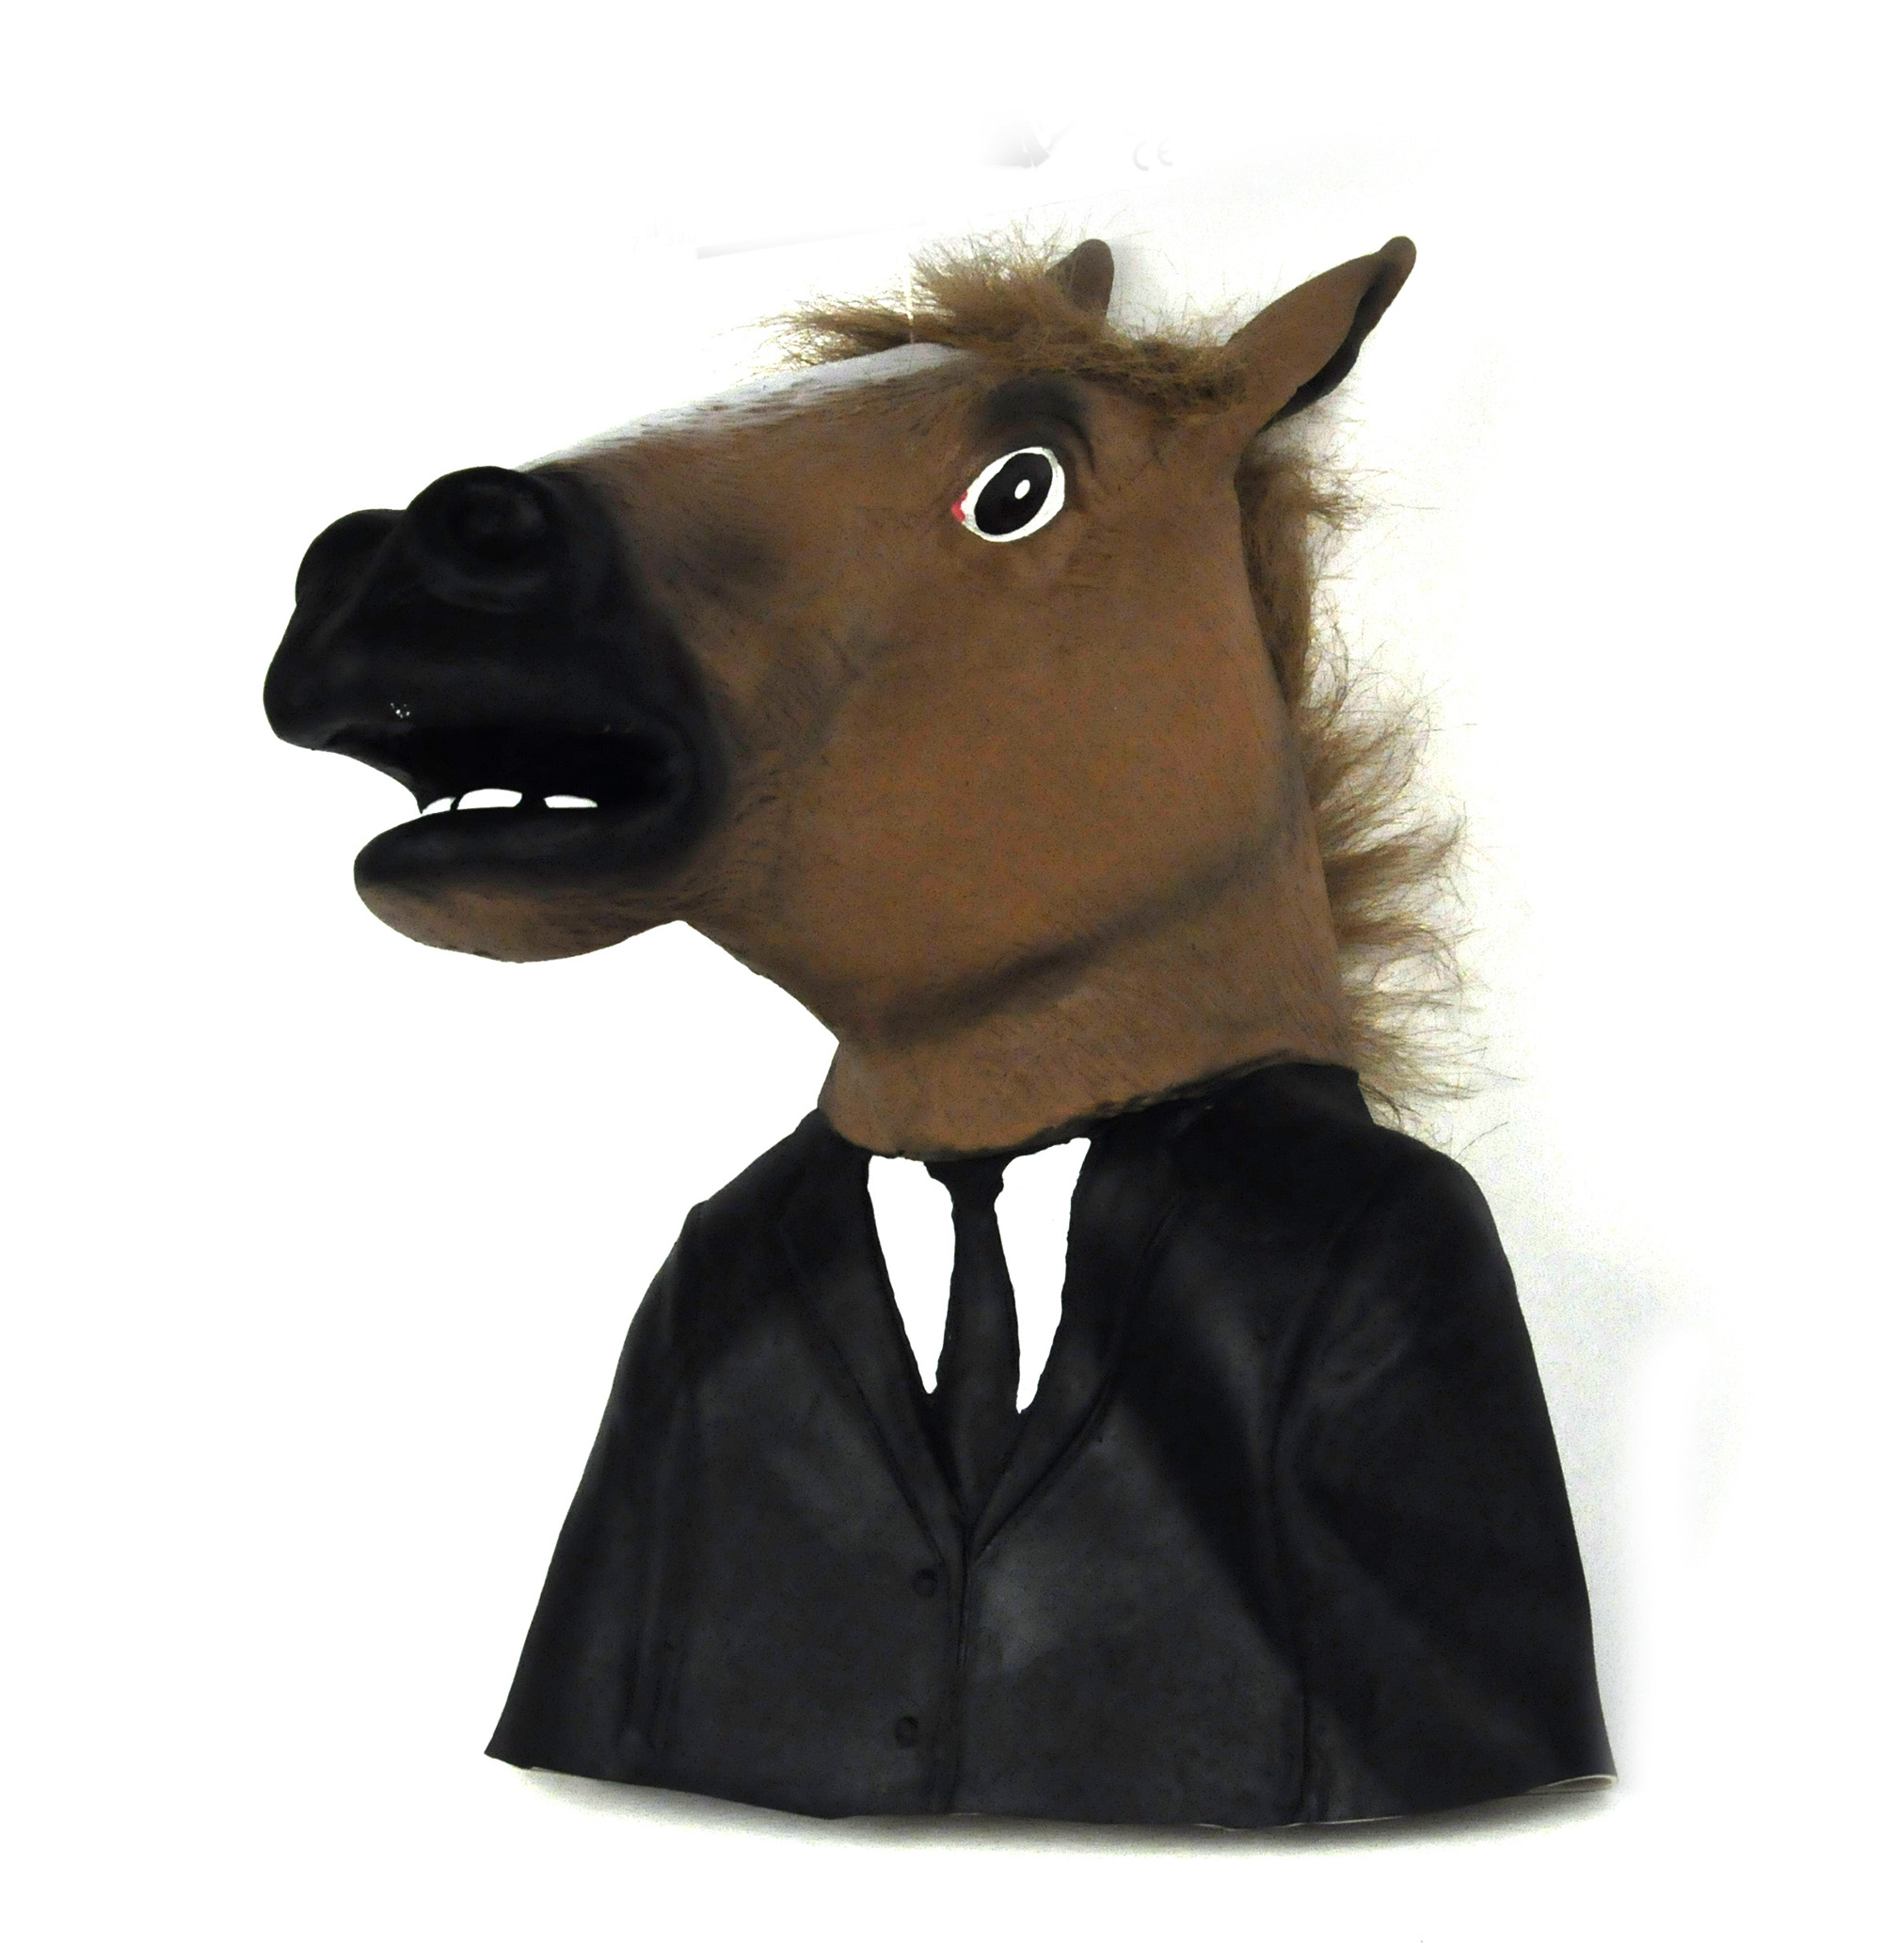 Creepy Hand Horse Ventriloquist Hand Puppet Horse In A